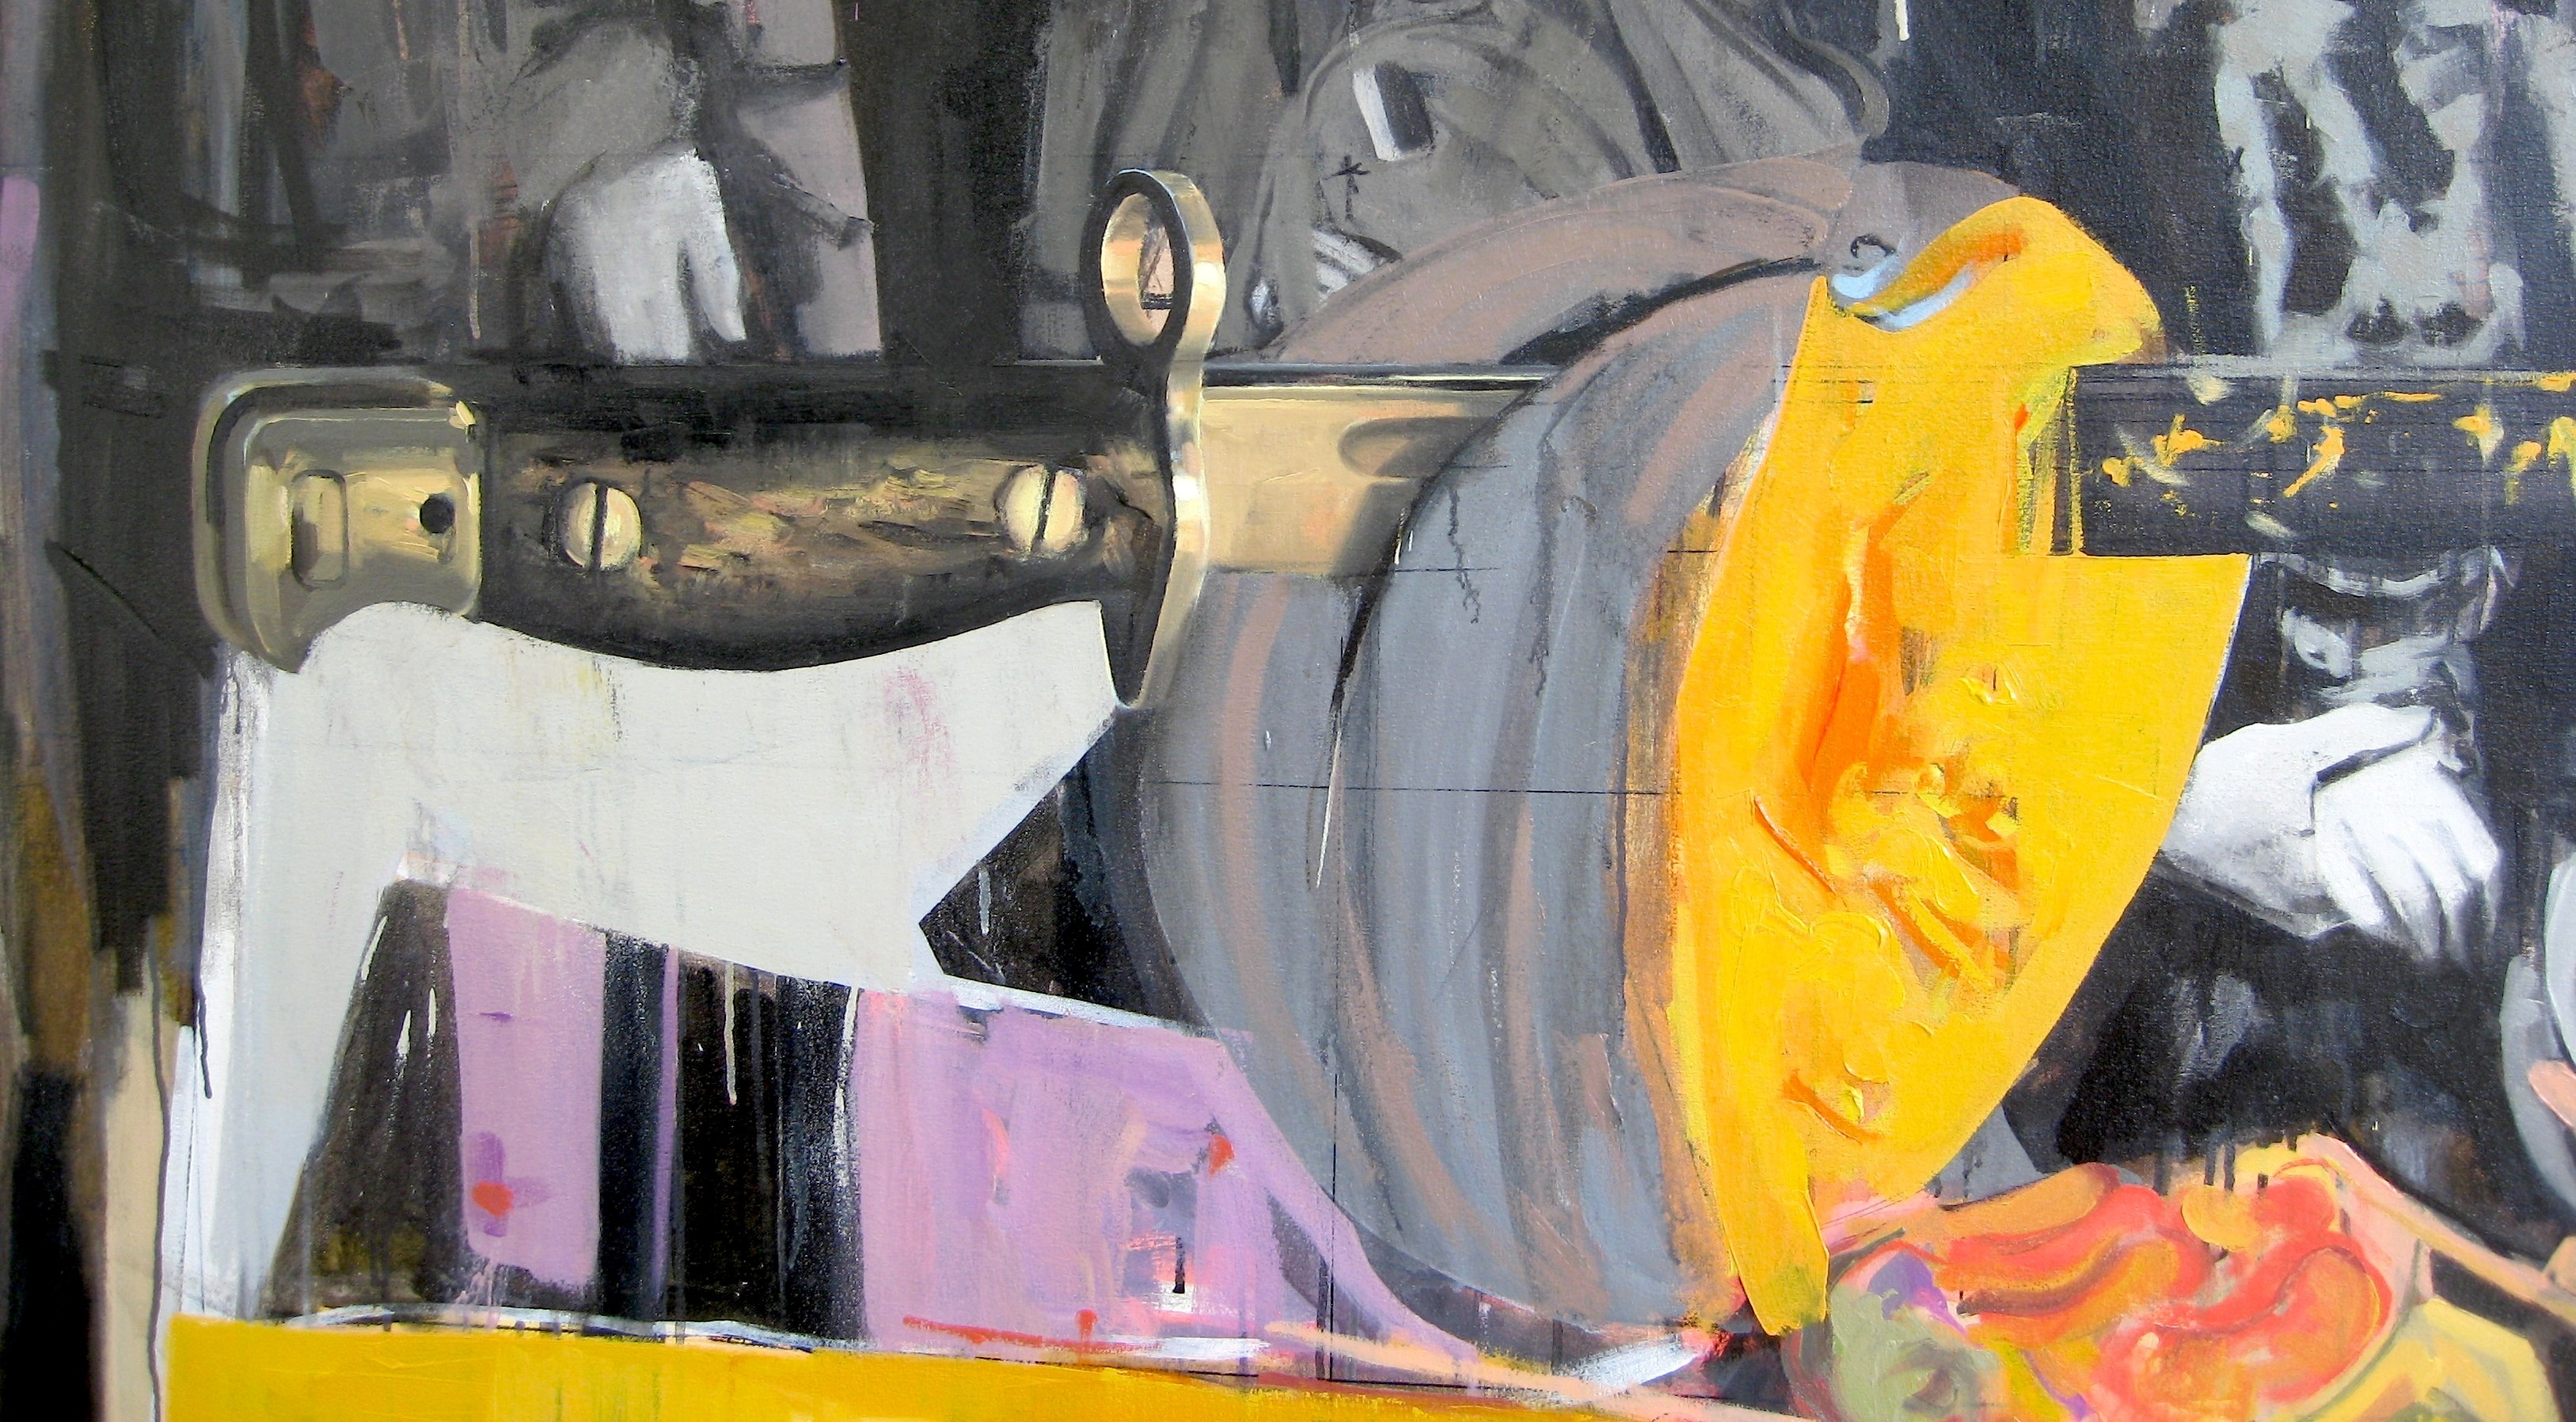 Michael Nay, Cleave - Clasp 2016 (detail), oil on canvas, 2010 x 1830 mm